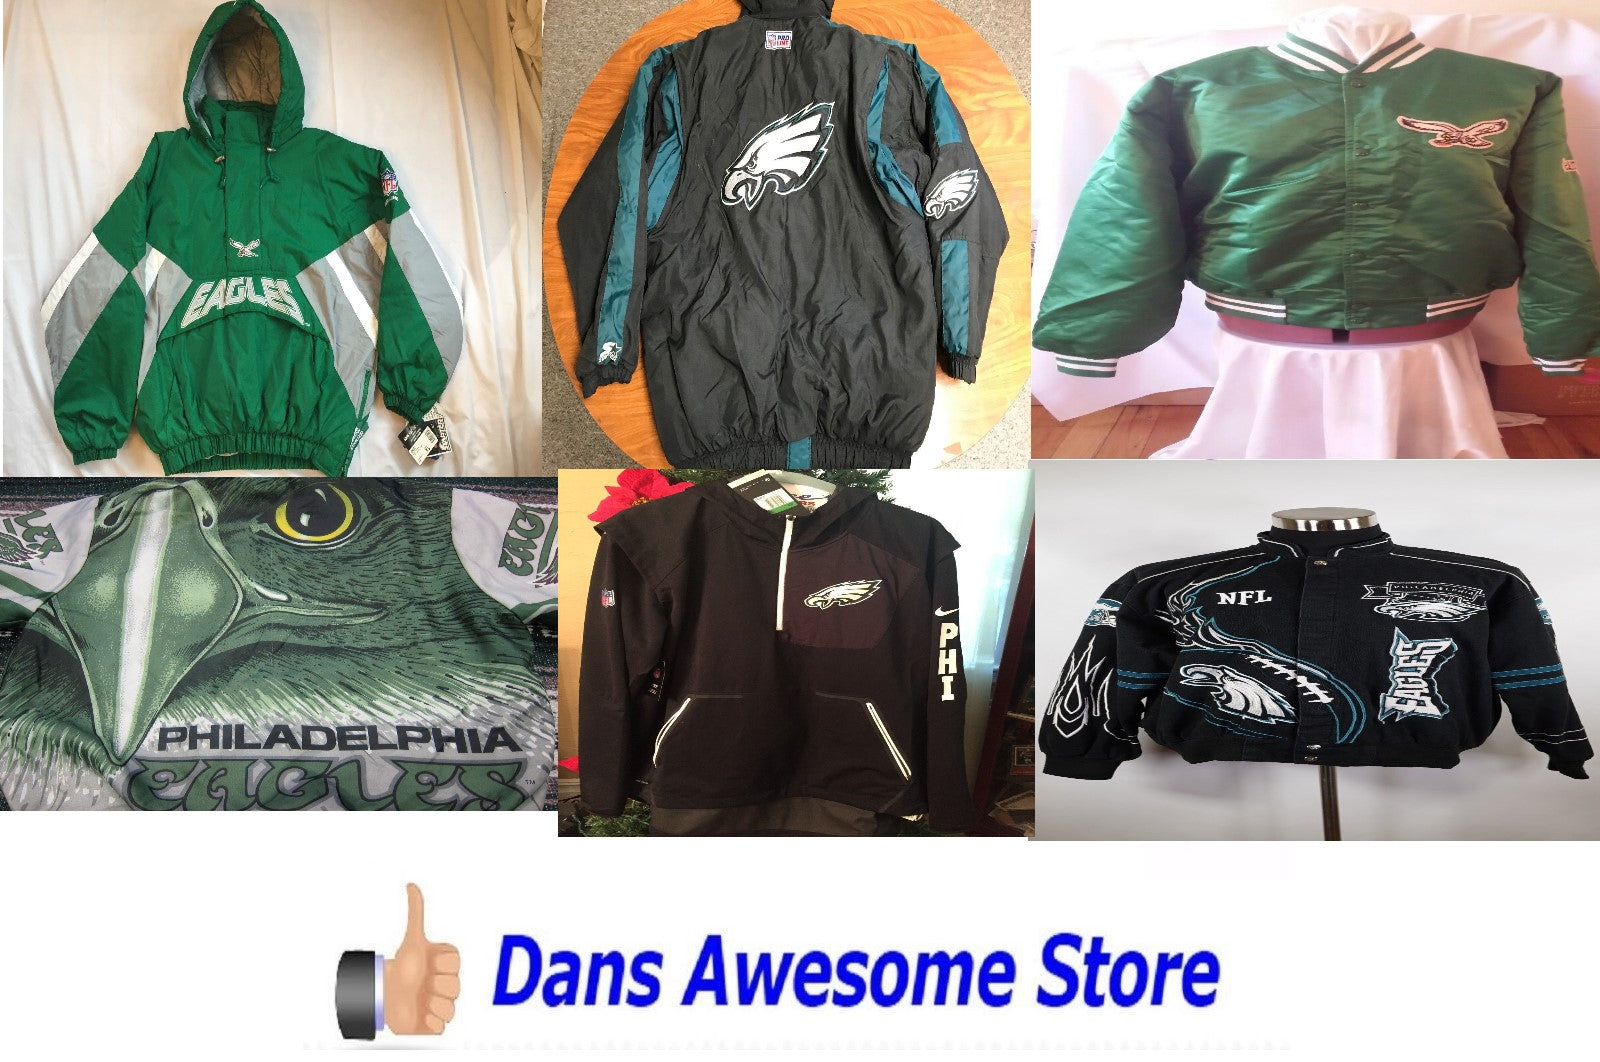 Philadelphia Eagles Jacket - Dans Awesome Store